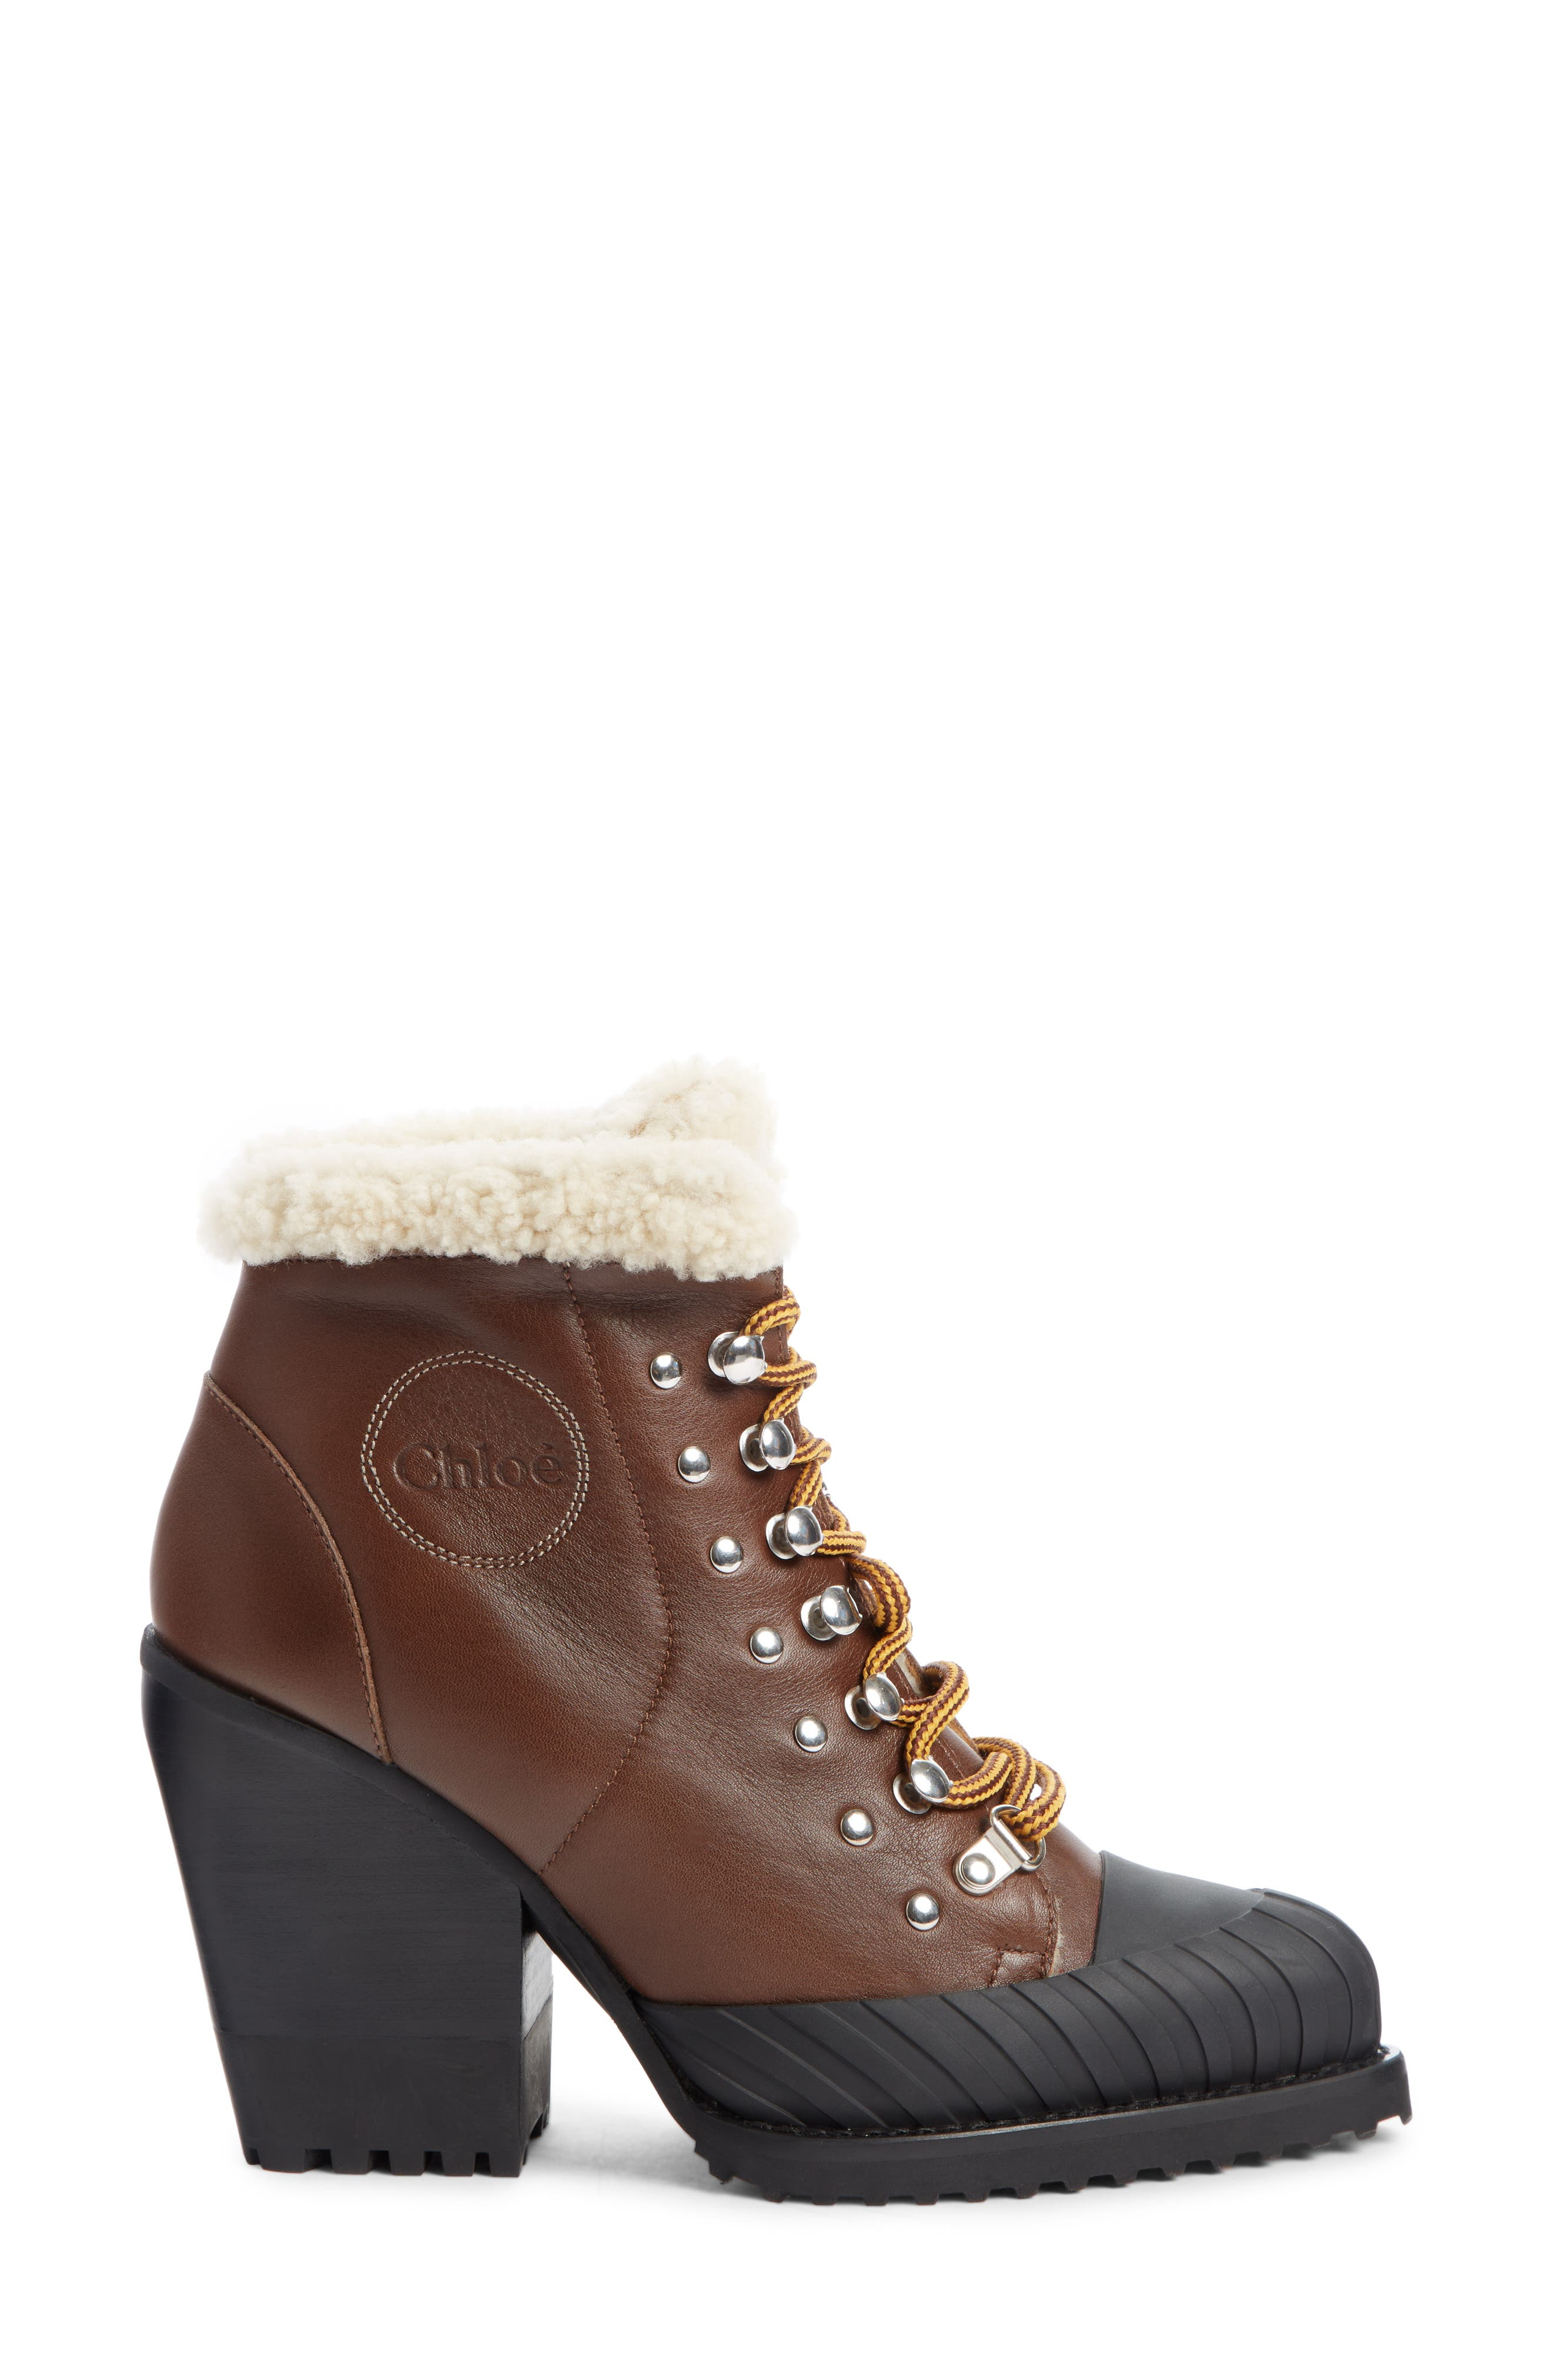 Rylee Genuine Shearling Lined Hiking Boot,                             Alternate thumbnail 3, color,                             TRUE BROWN LEATHER